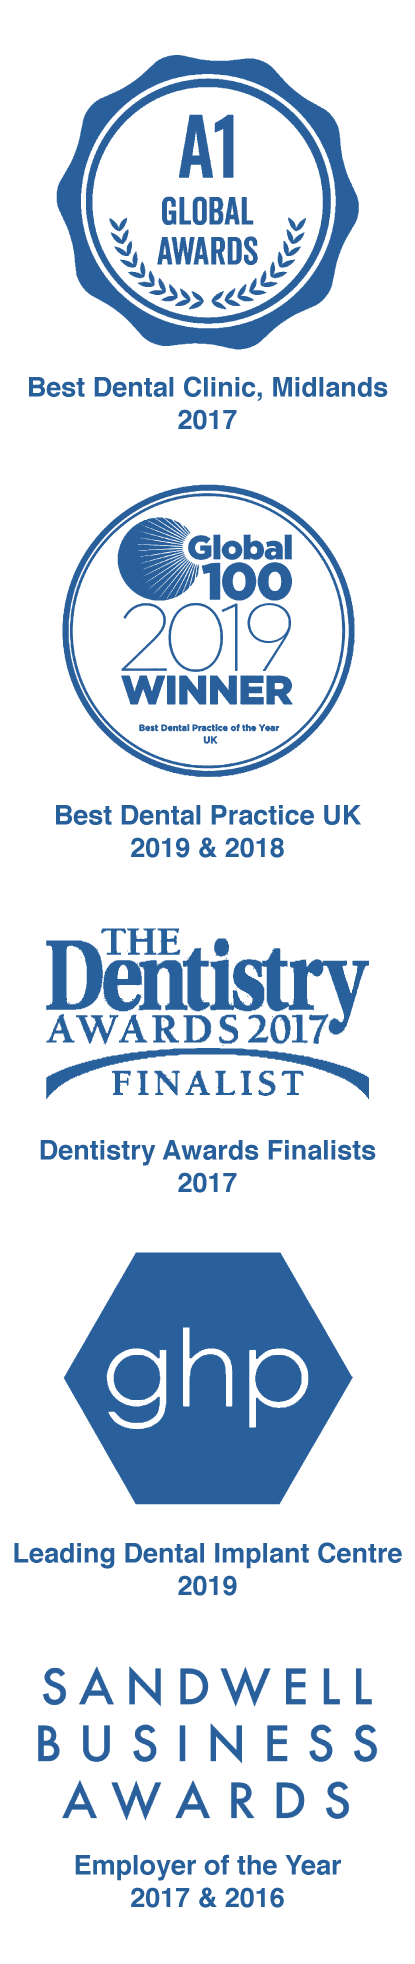 Scott arms dental award